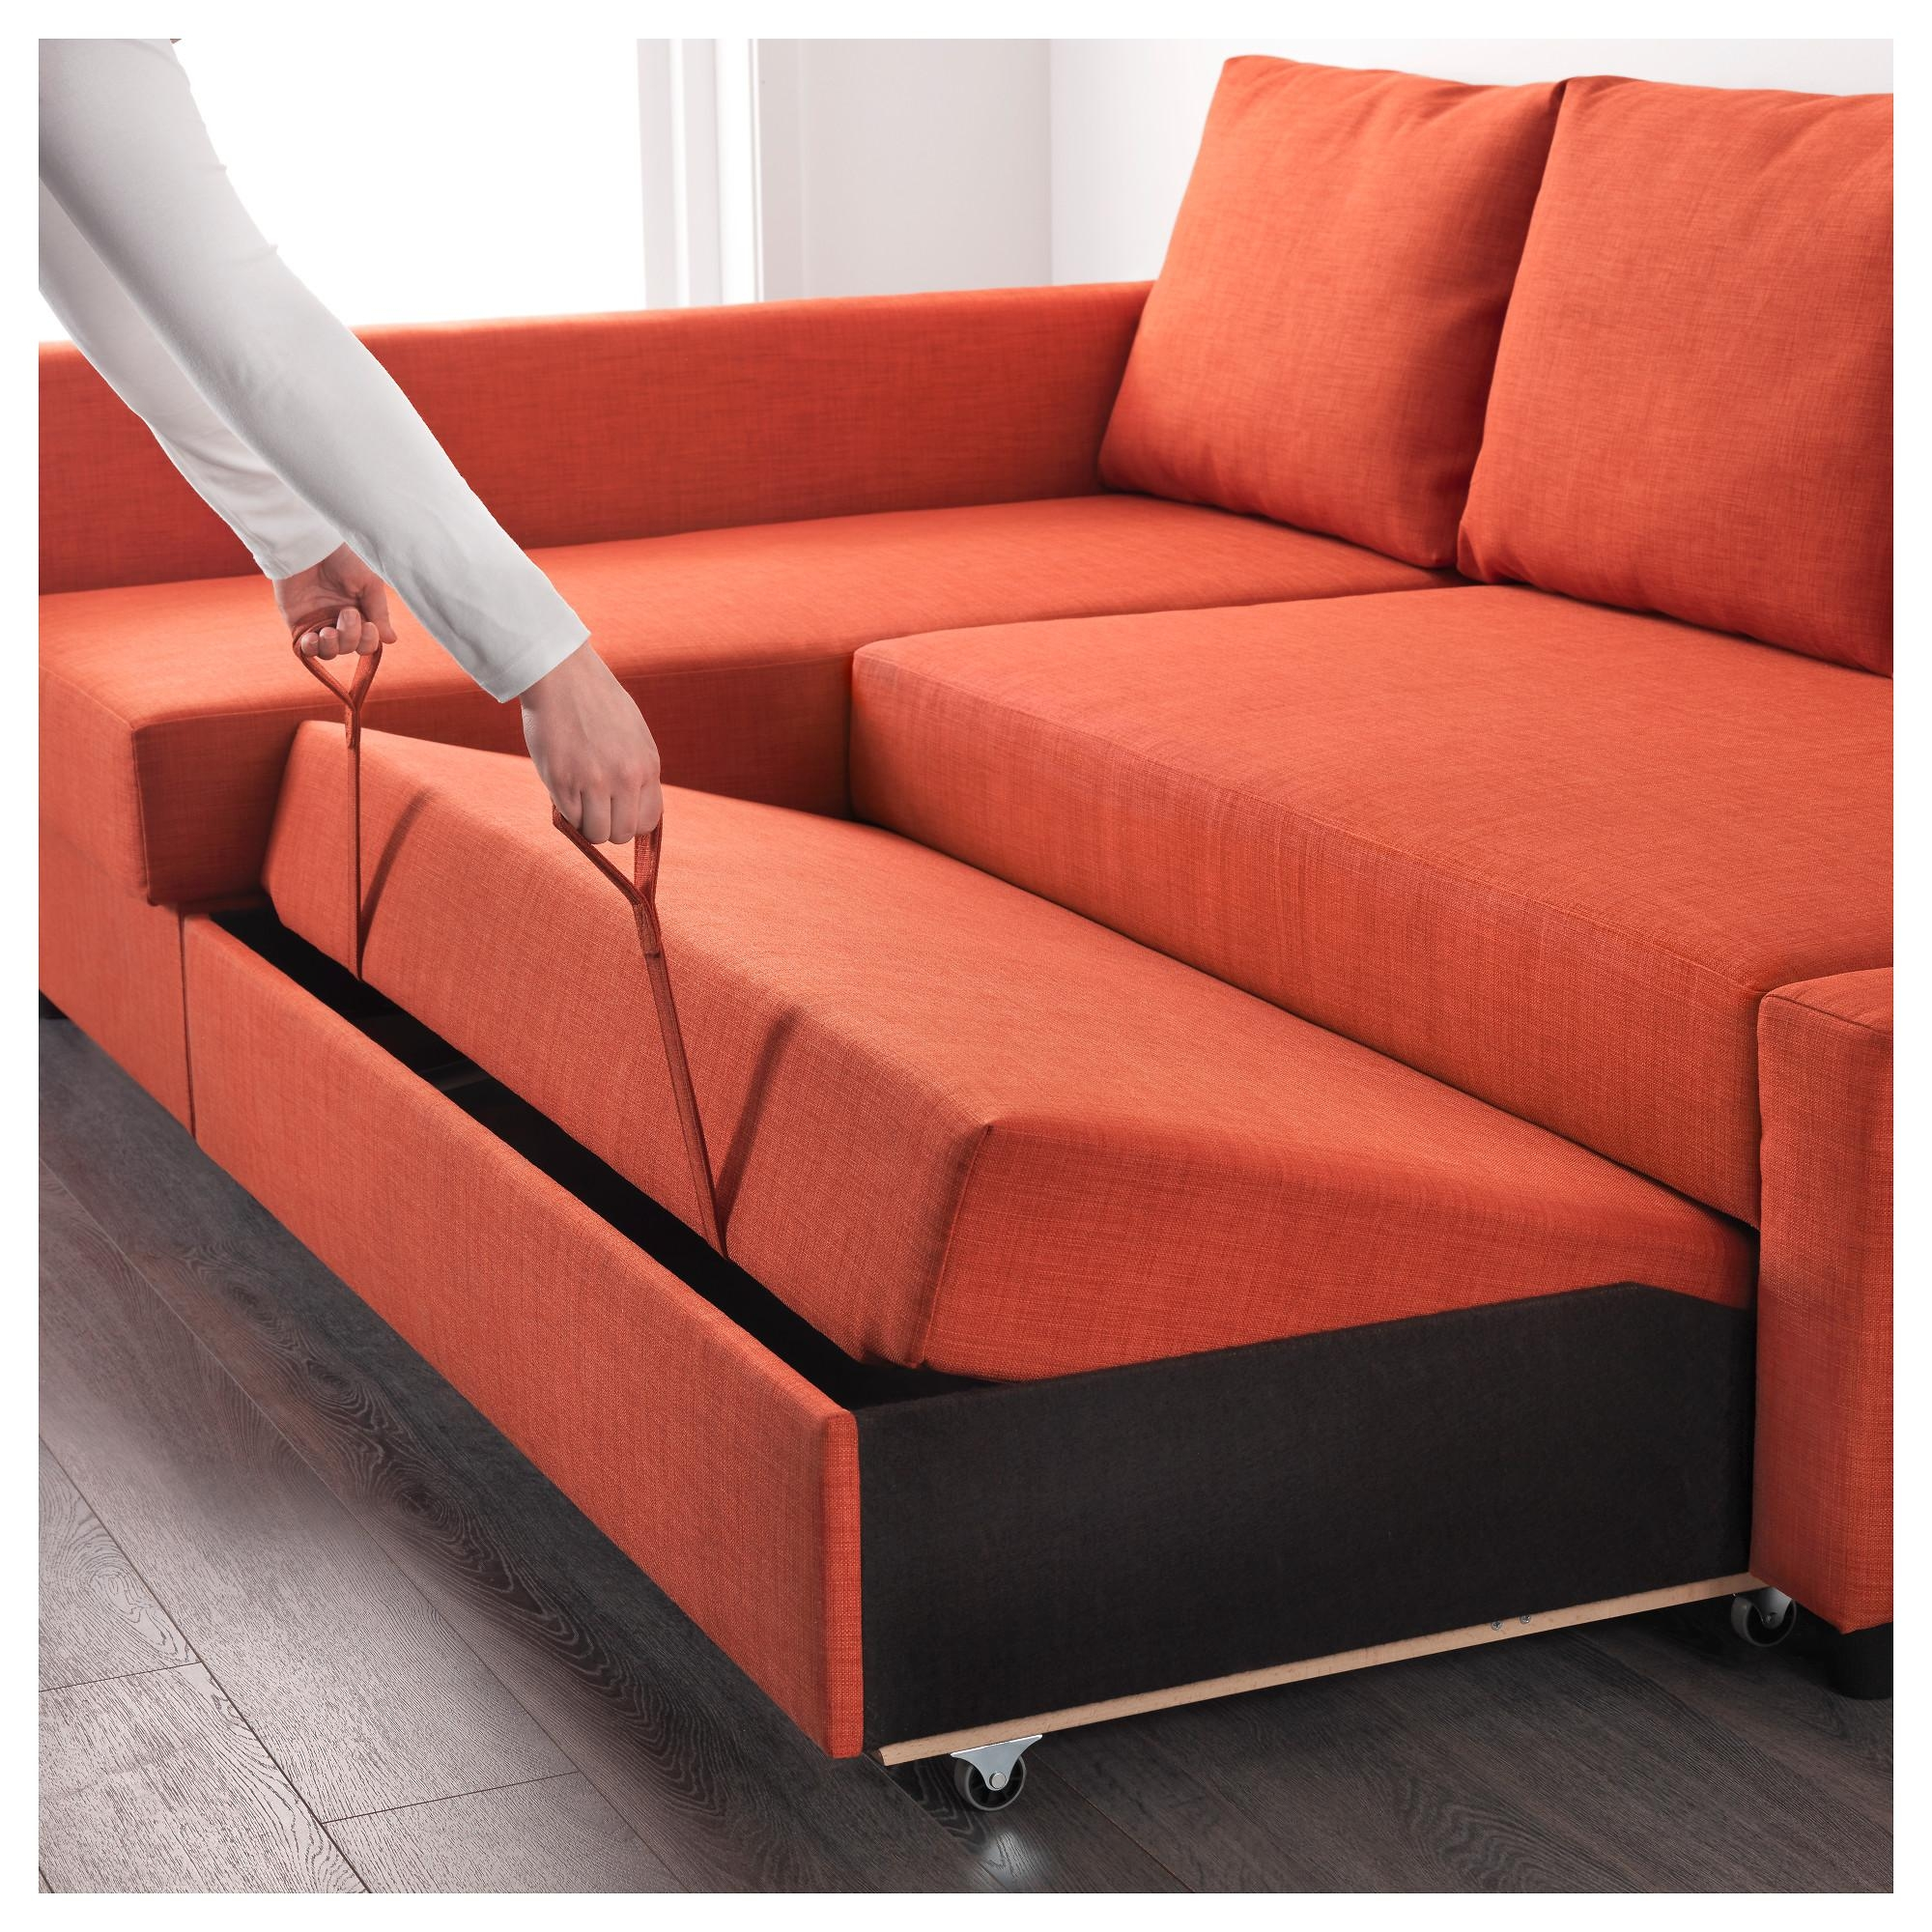 Furniture: Sleeper Chair Ikea With Different Styles And Fabrics To with regard to Red Sofa Beds Ikea